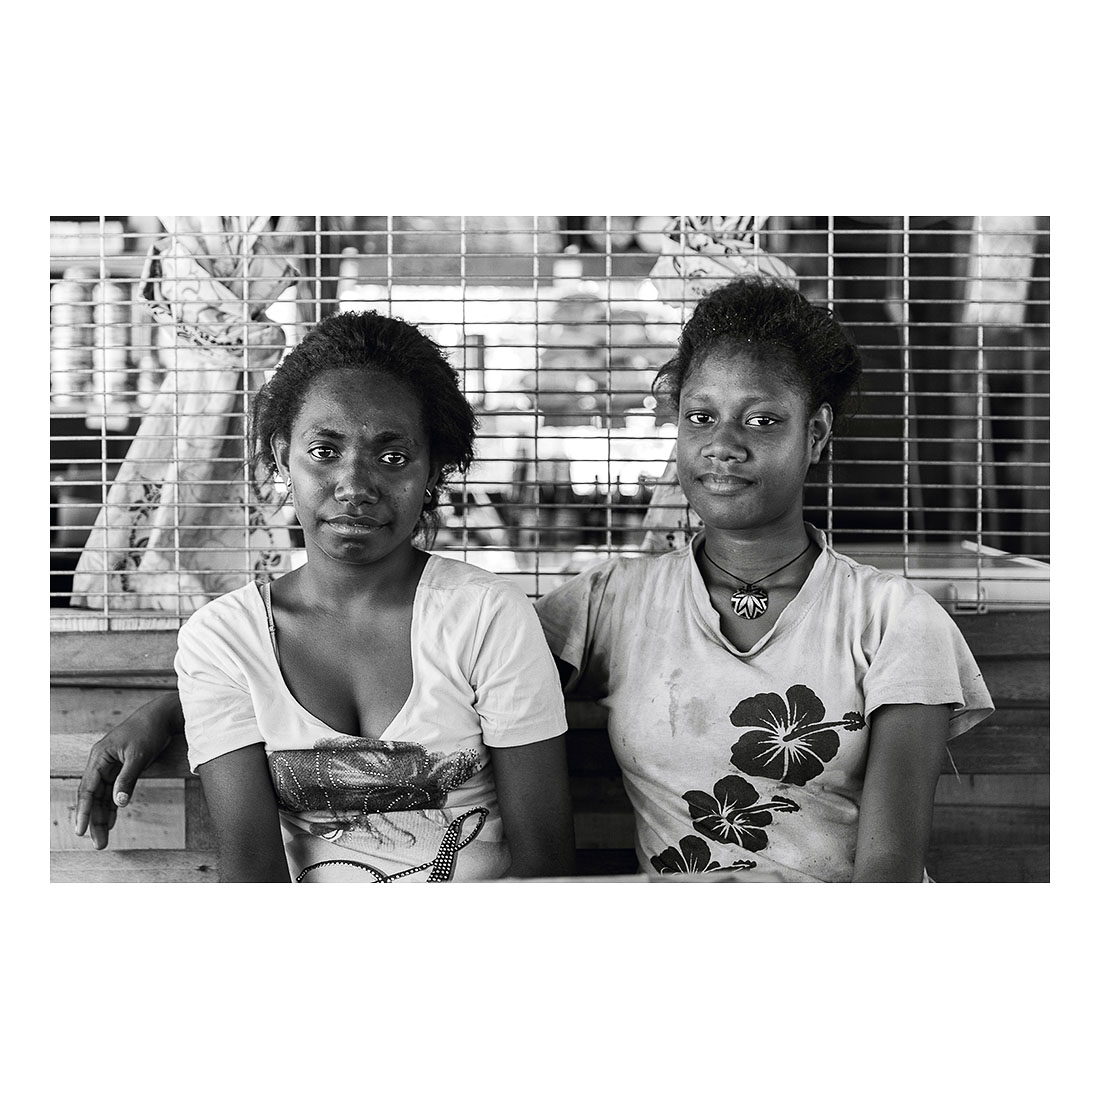 #45 Hulavu, Guadalcanal, Solomon Islands  (2016).  Archival pigment print on Ilford paper. Exhibition print 24cm x 36cm. Different sizes available.